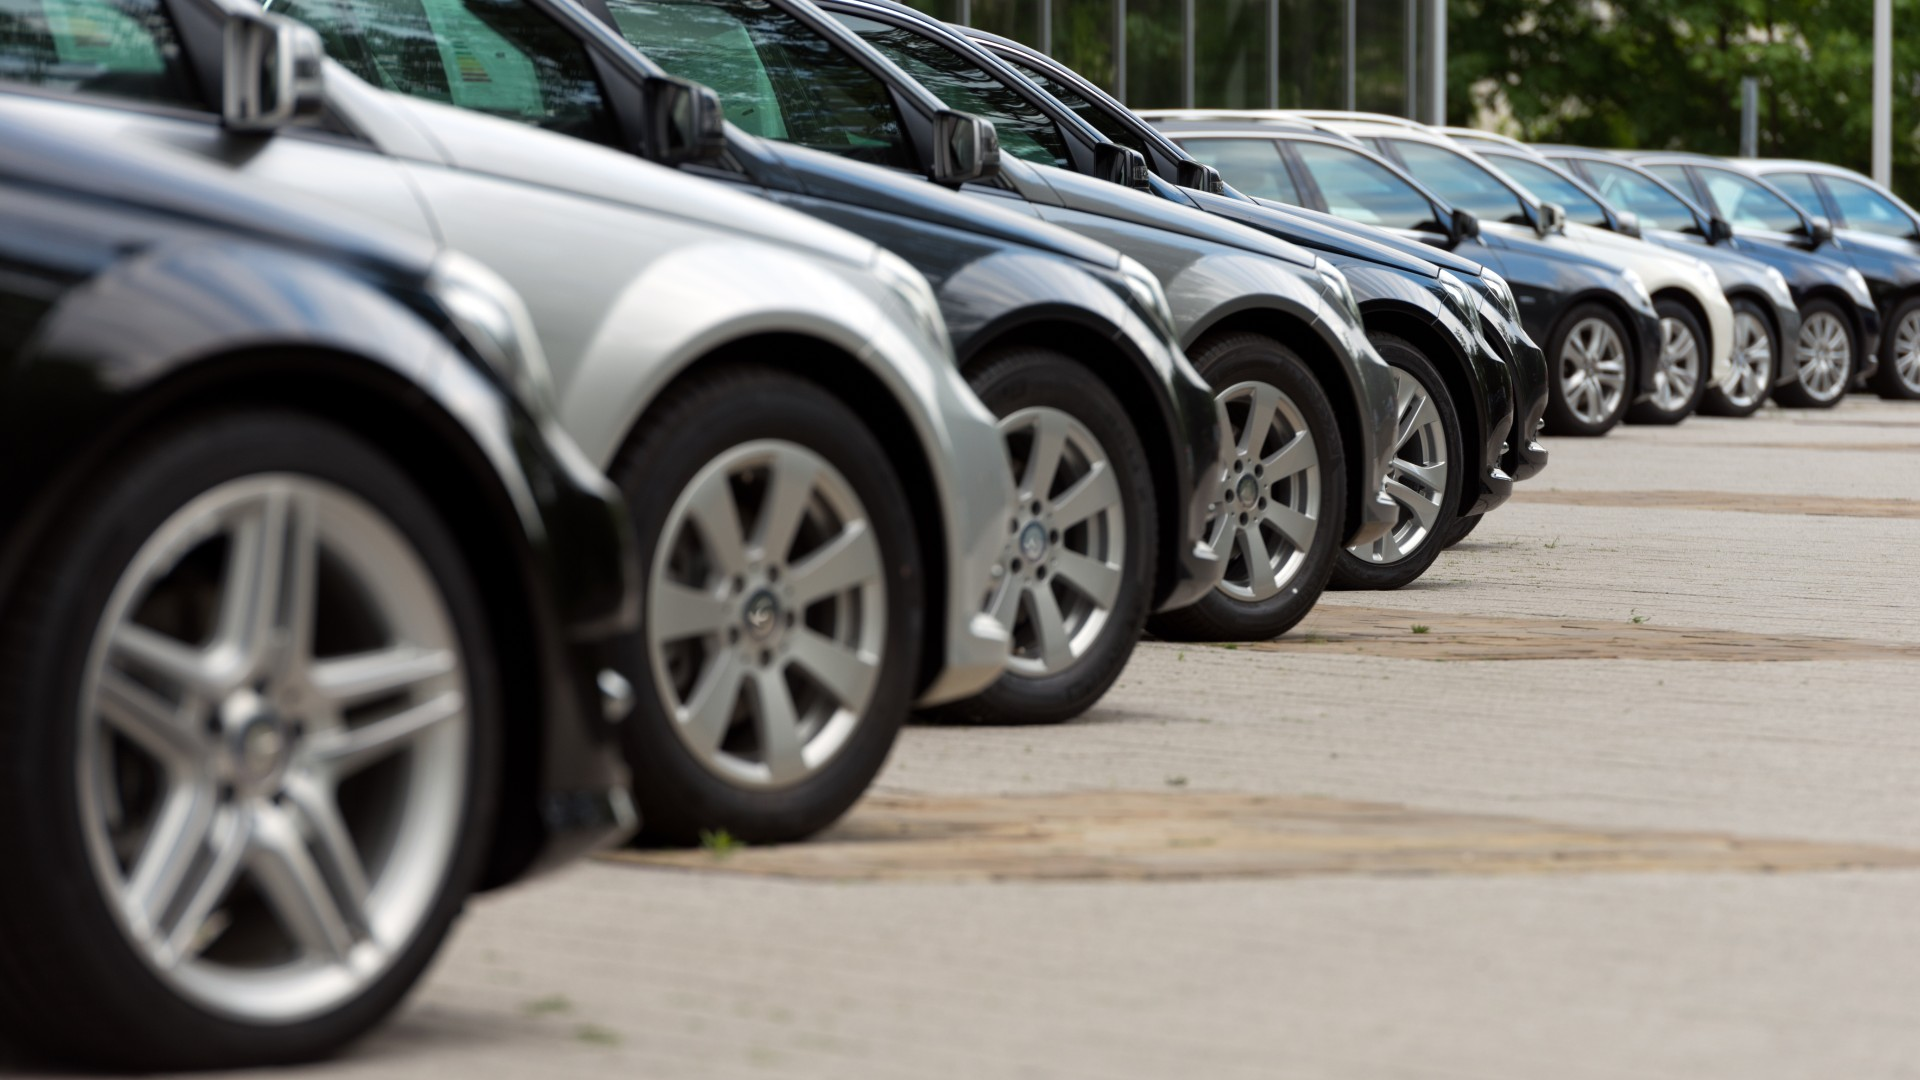 New Website Aims To Make Car Buying Fun Again